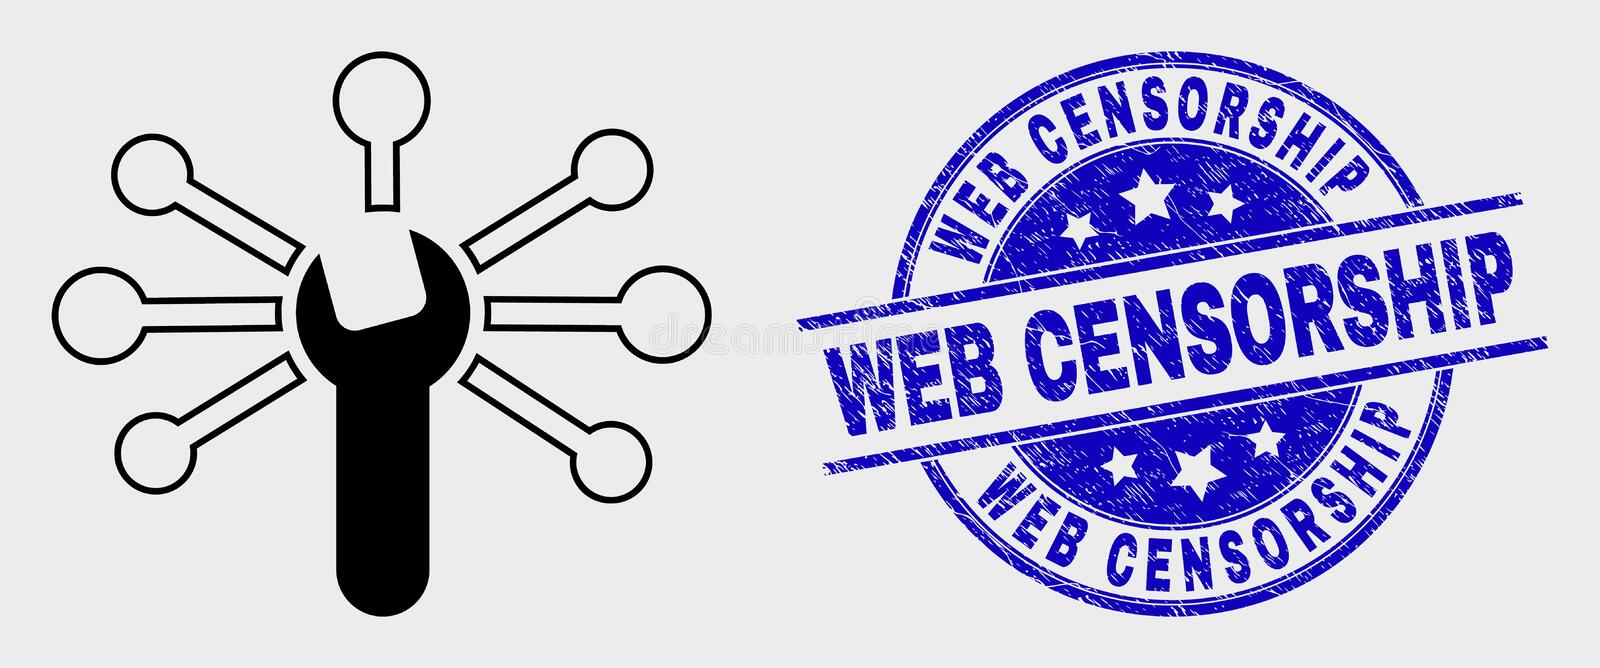 Vector Line Wrench Links Icon and Distress Web Censorship Stamp Seal. Vector contour wrench links icon and Web Censorship seal. Blue rounded scratched stamp with stock illustration